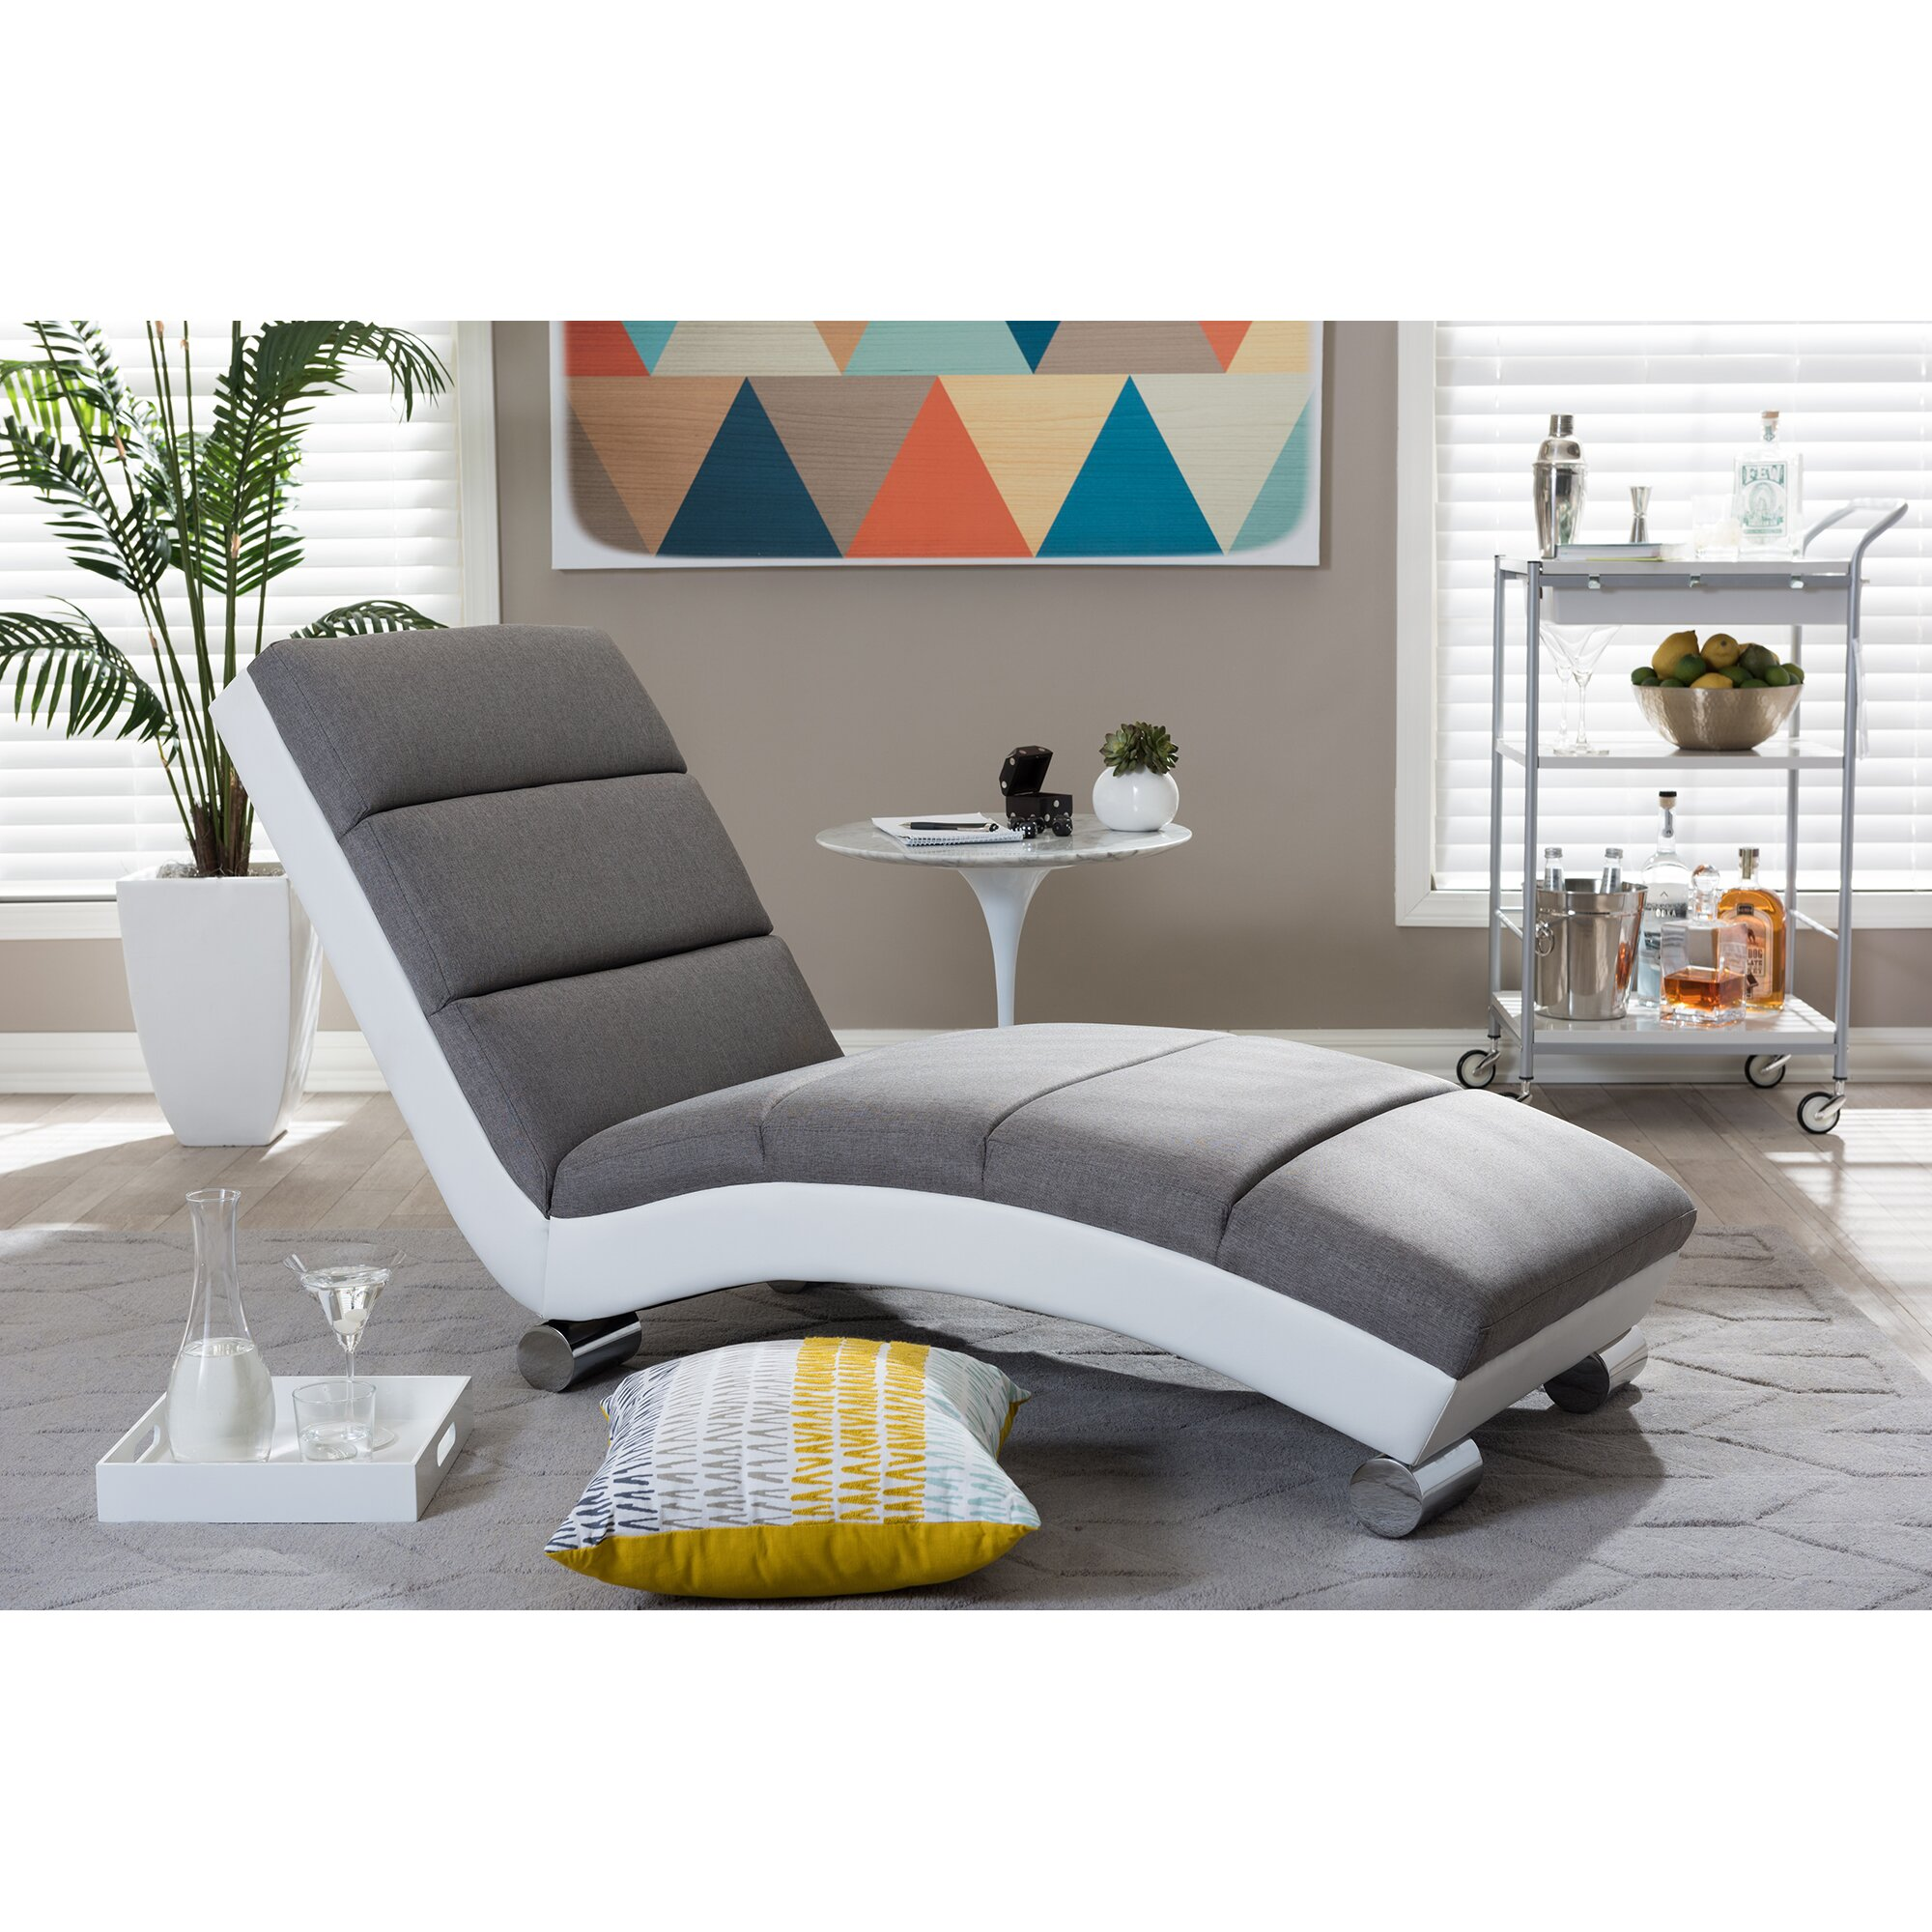 Wholesale interiors baxton studio chaise lounge reviews for Chaise lounge contemporary